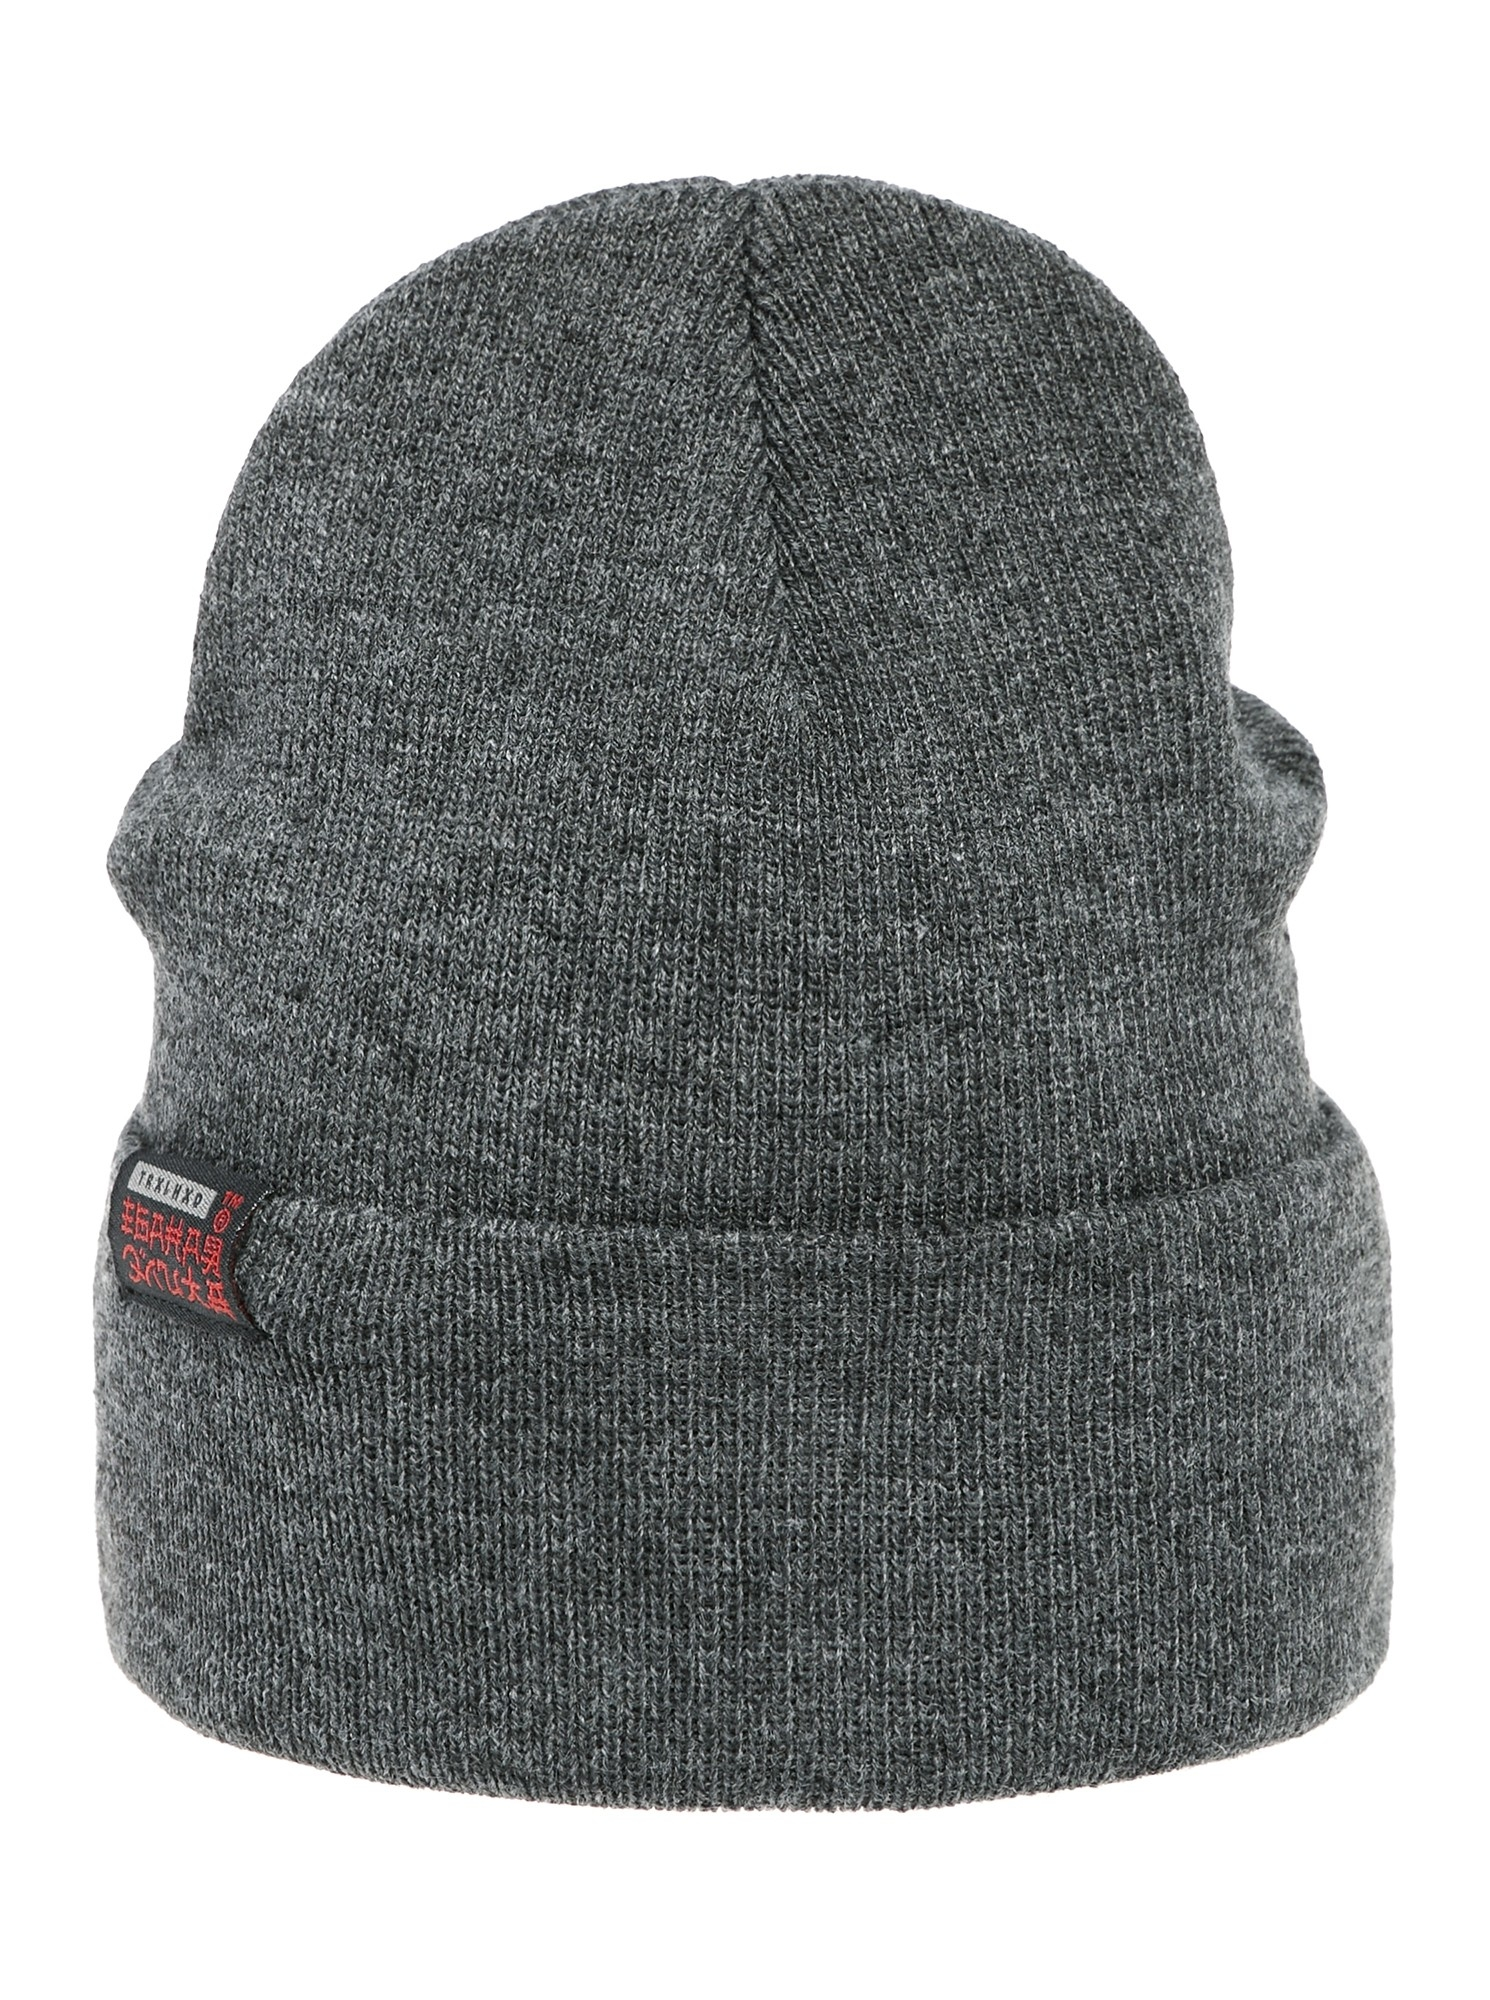 Шапка TRAILHEAD HAT19-LBL-ELITE-DGR, HAT19-LBL-ELITE